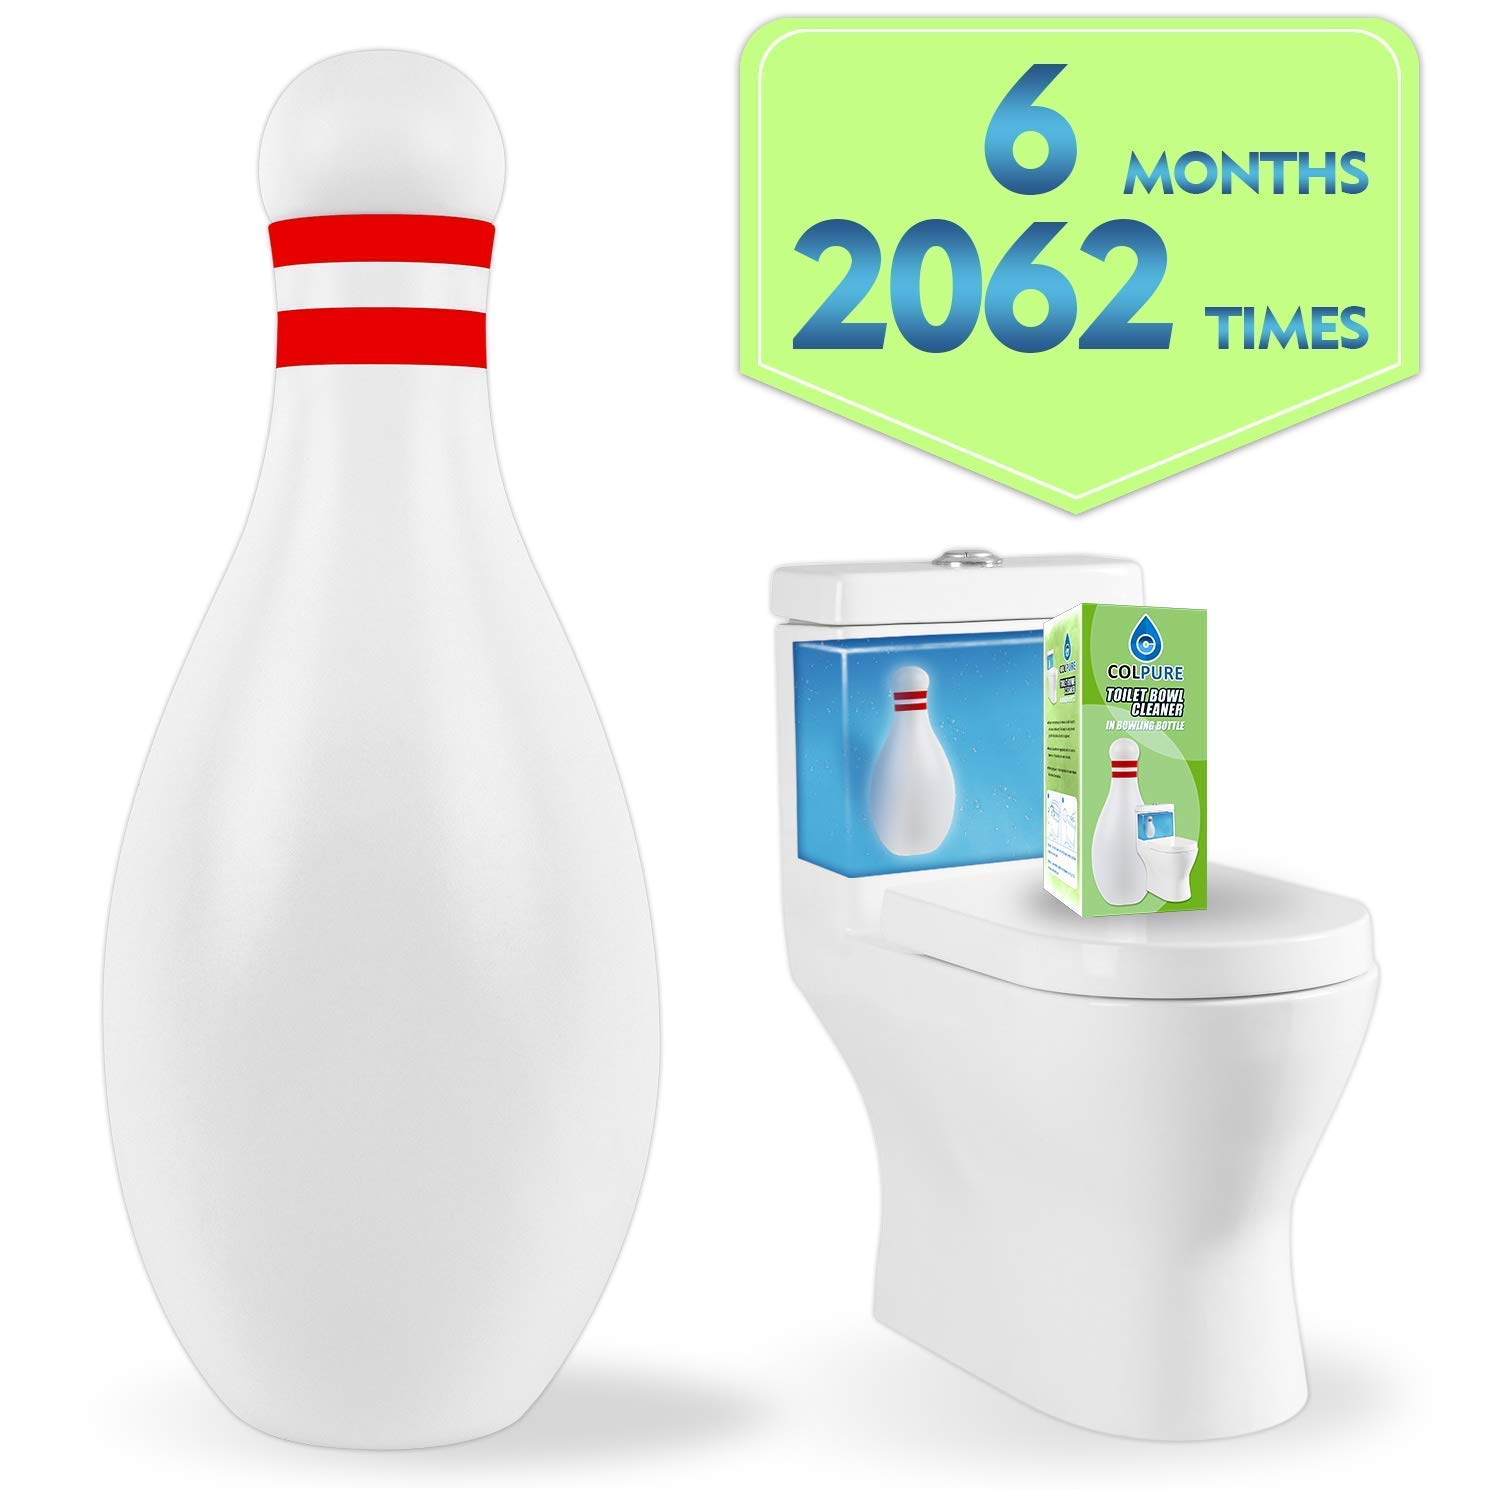 Colpure Toilet Bowl Cleaner, Automatic Bathroom and Tank Cleaning System Toilet Cleaner, Toilet Bowl Cleaner Tablets of Lasts 6 Months or has About 2,000 Flushes -1 Pack (Green)